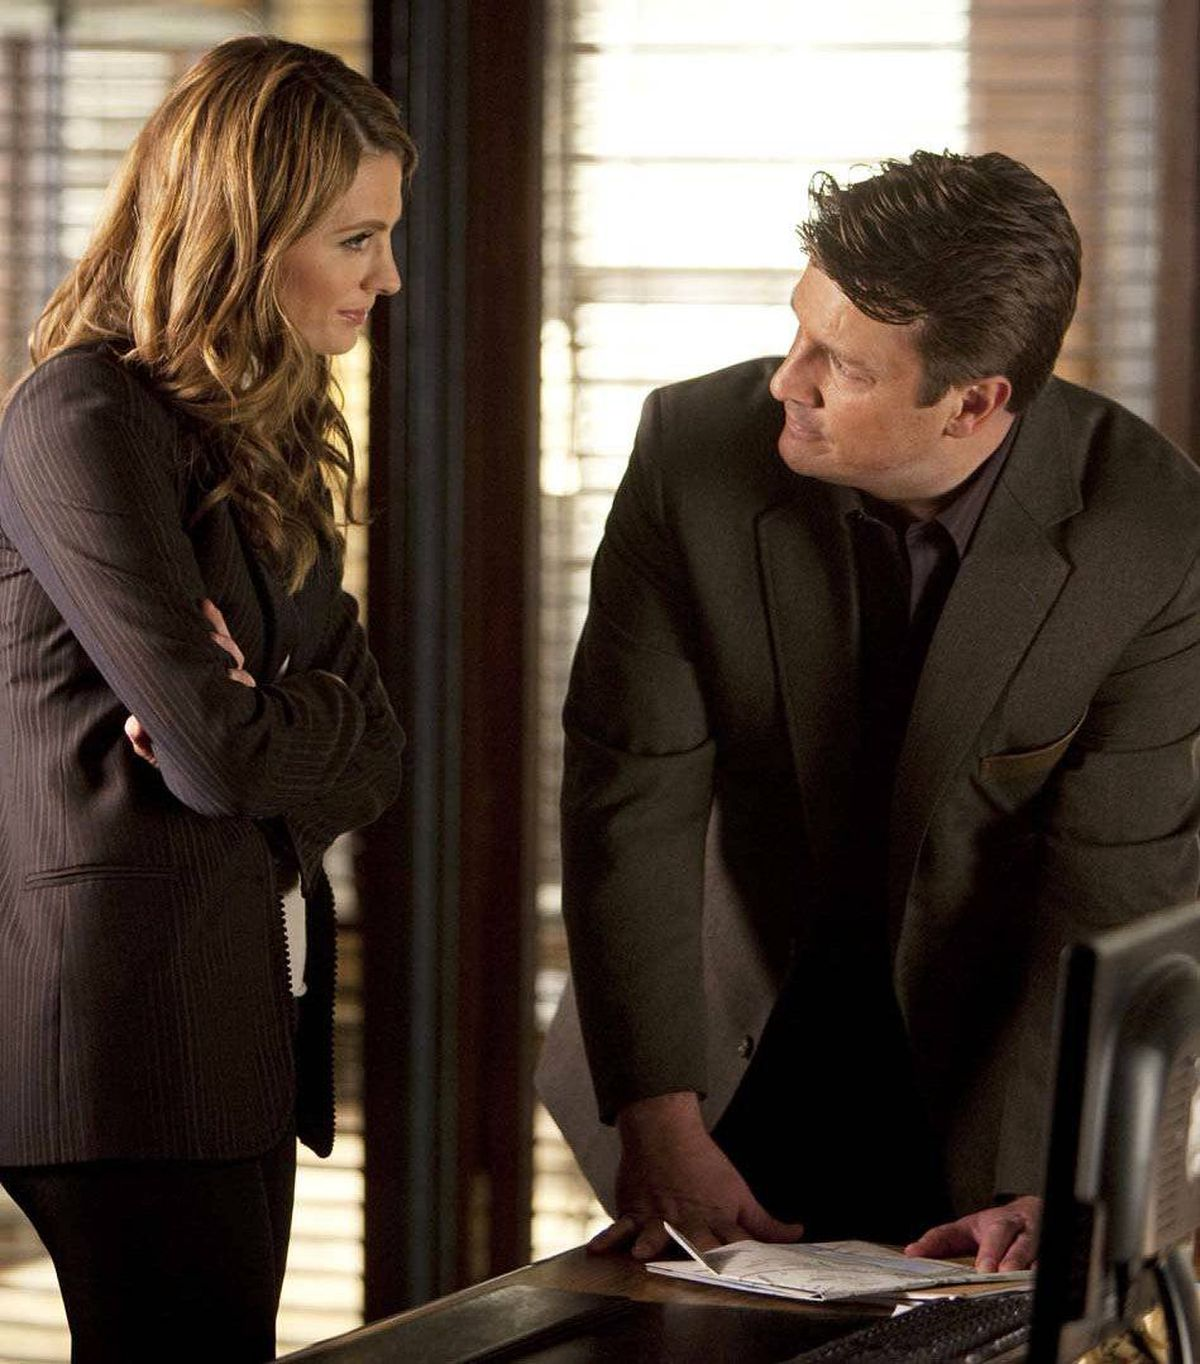 DRAMA Castle ABC, CTV, 10 p.m. ET/PT Canadian content on American prime time will dip slightly following tonight's fourth-season finale of this popular crime-drama. Those paying attention will know the show's entire appeal wrests on the sustained sexual tension between the handsome author-sleuth Richard Castle, played by Edmonton-born Nathan Fillion, and the tough but sexy NYPD detective Kate Beckett, played by Stana Katic, a native of Hamilton, Ont., but does their forbidden love have a future? In tonight's season ender, Beckett redoubles her efforts to find the man who shot her, particularly after he's the lead suspect in the murder of an army veteran. Castle has vital information on the case, but telling Beckett will compromise his author integrity. So what's more important? The babe or the book?